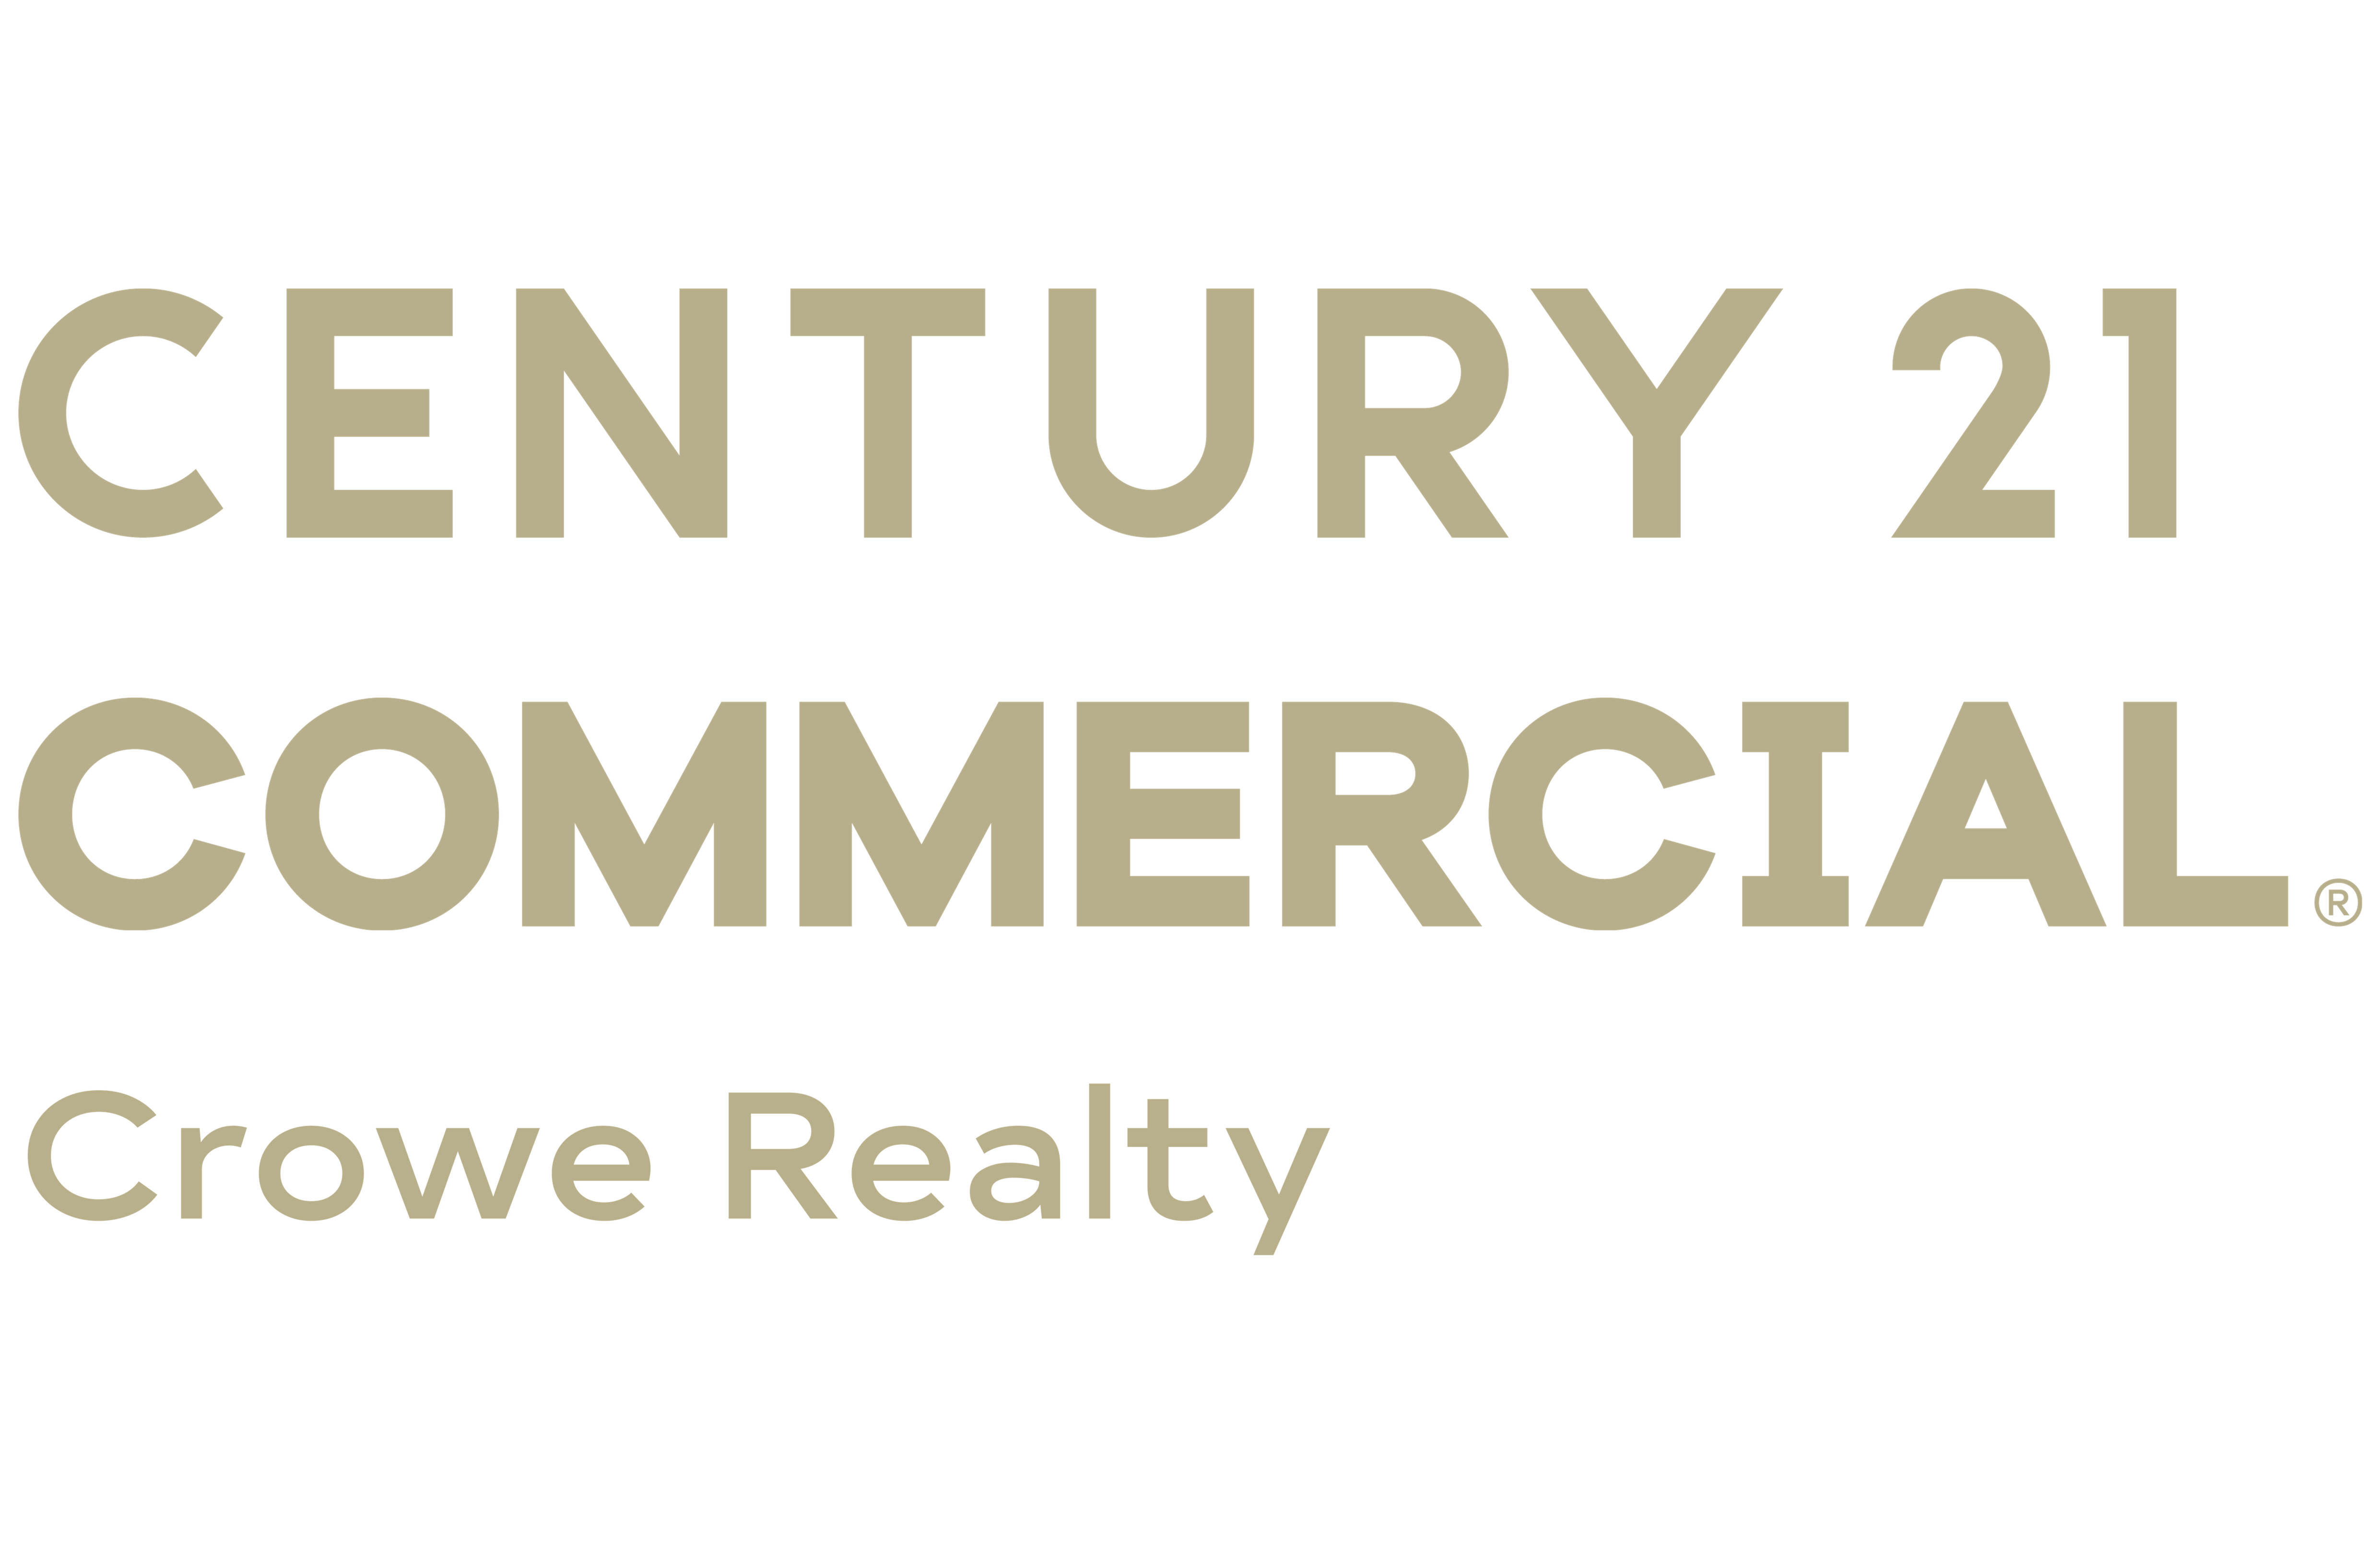 CENTURY 21 Crowe Realty